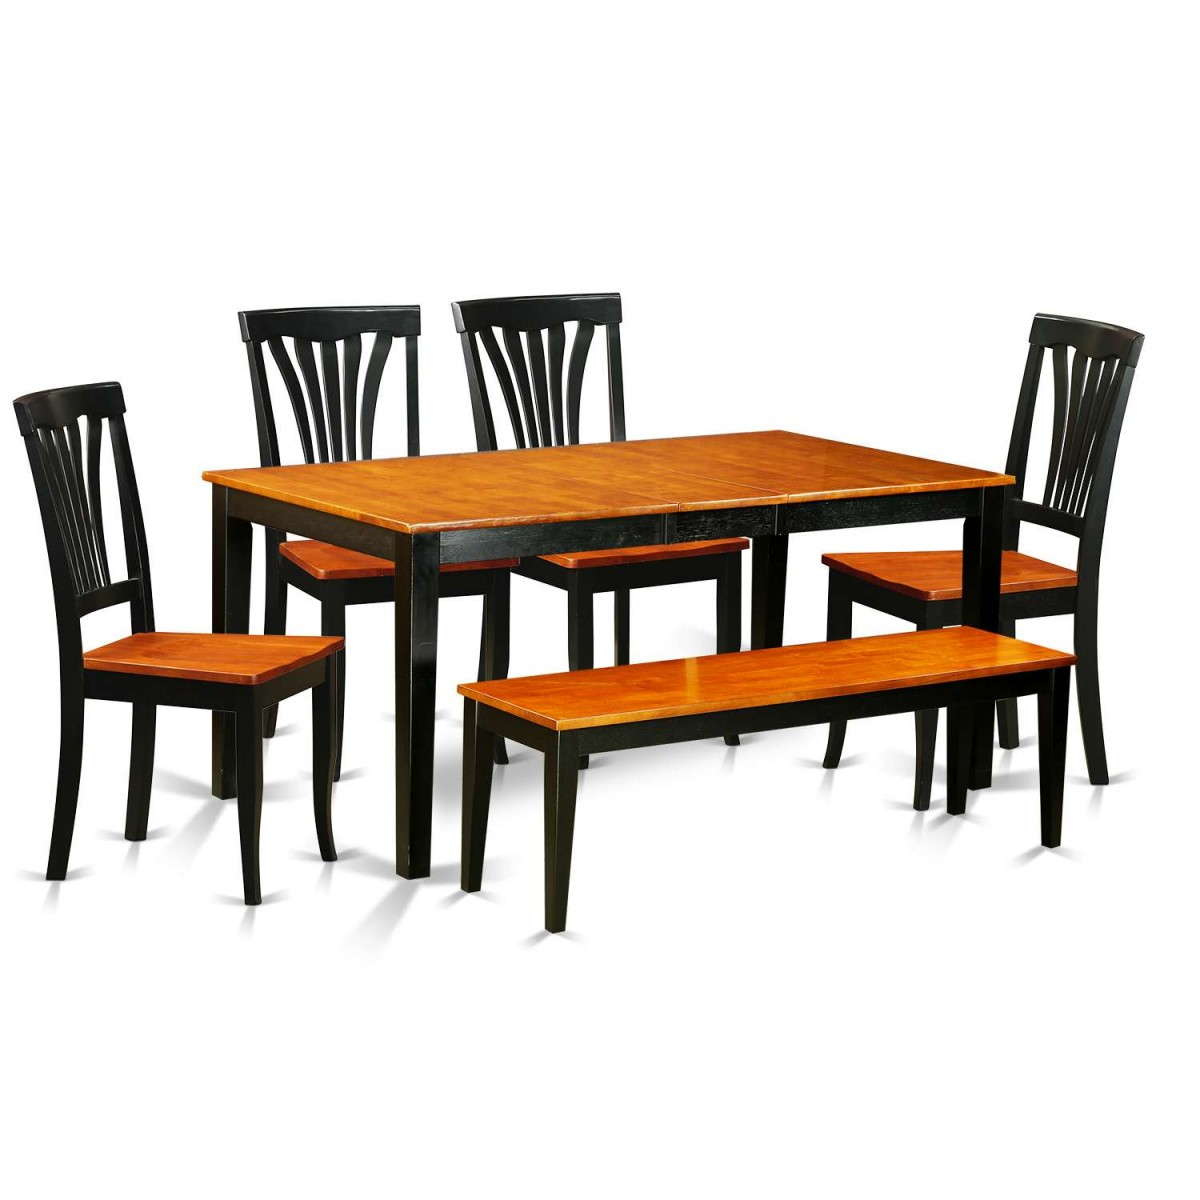 Kitchen Table With 6 Chairs: East West Furniture Nicoli 6 Piece Kitchen Table Set